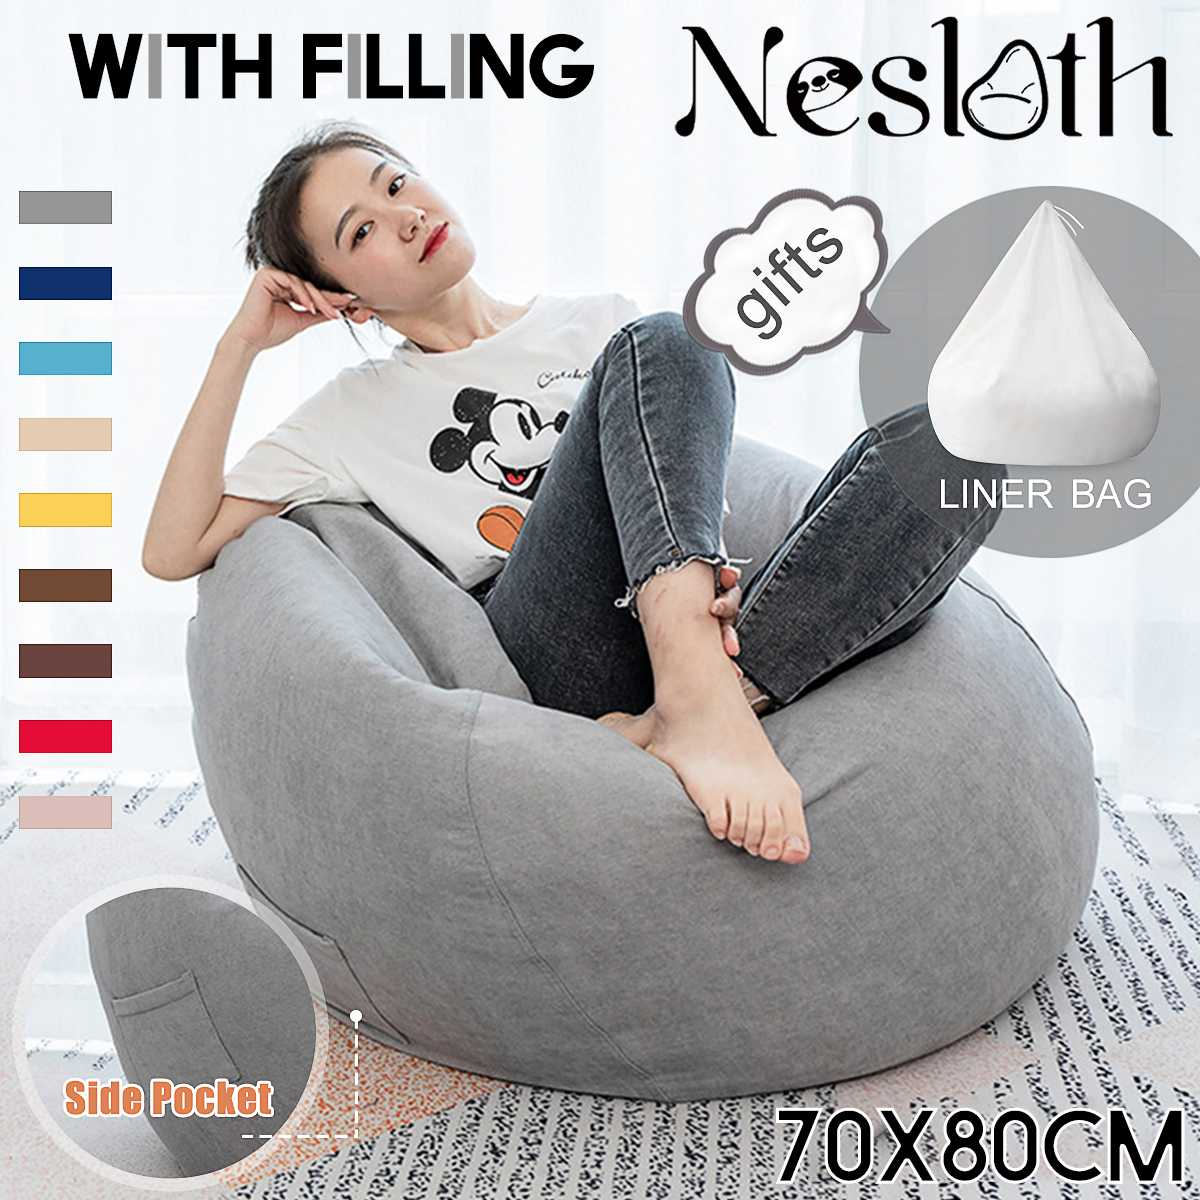 Nesloth Full Lazy BeanBag Sofas Chairs with Inner Liner&EPS Filler Lounger Seat Bean Bag Pouf Puff Couch Tatami Living Room Mini-BUYALL20